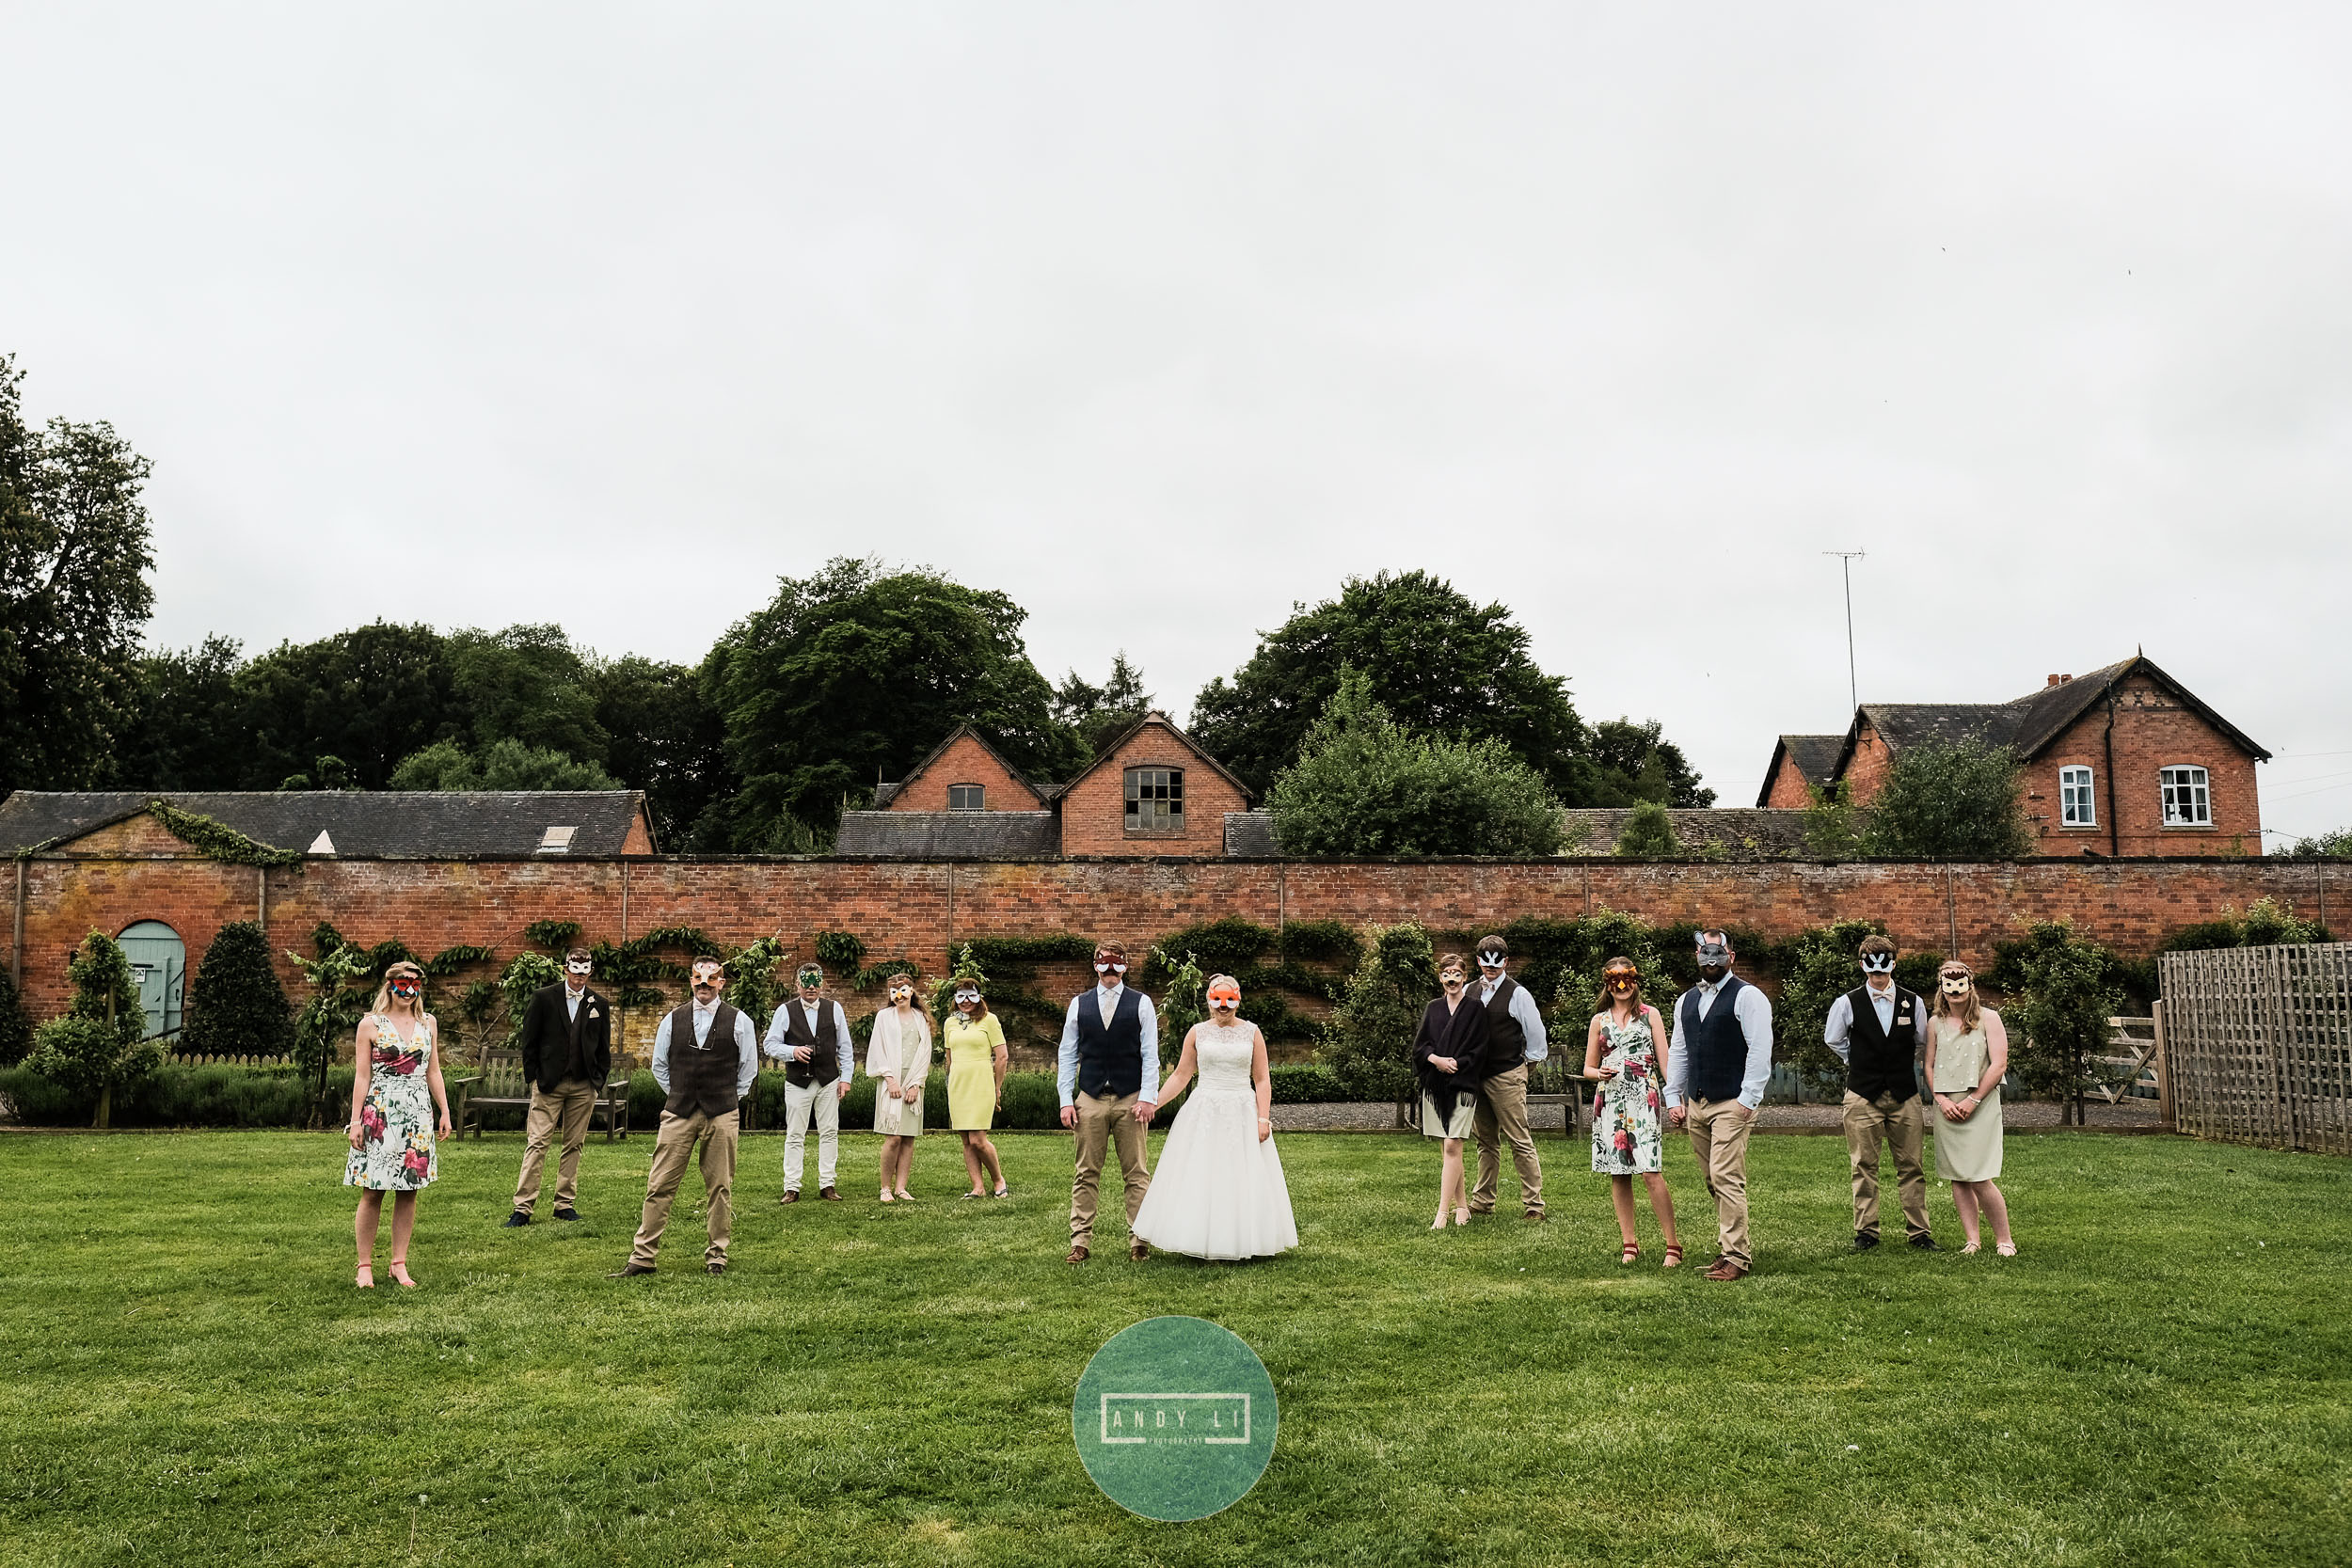 Sugnall Walled Garden Wedding Photographer-112-XPRO1585.jpg